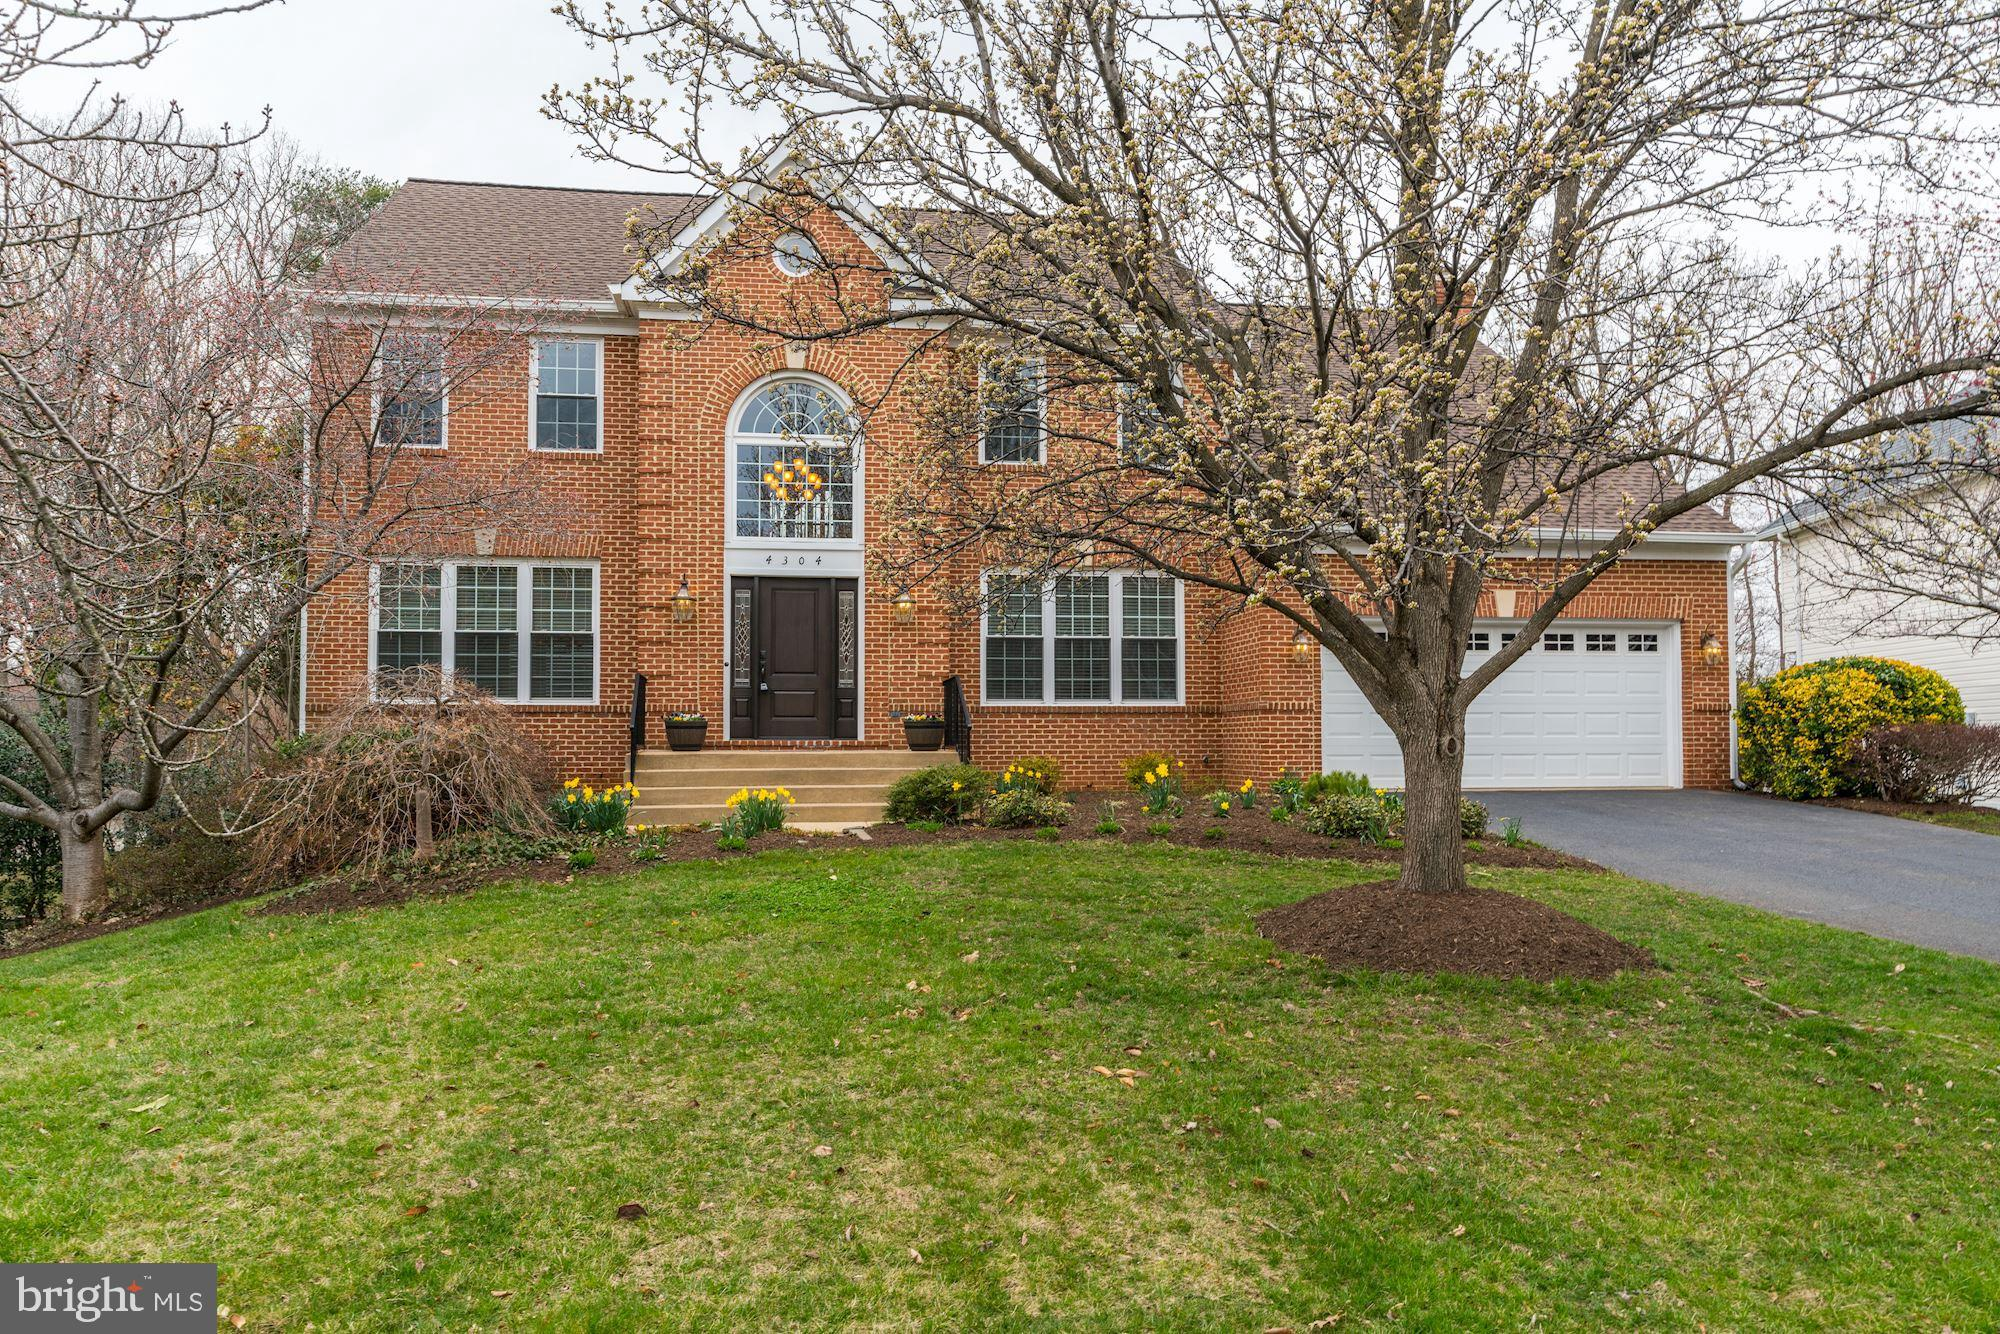 WELCOME HOME TO THIS SOPHISTICATED, YET COMFORTABLE BRICK FRONT COLONIAL SITED ON FABULOUS .35 ACRE FENCED/WOODED LOT IN PRIVATE CUL-DE-SAC.  PREMIER ENCLAVE OF 17 ESTATE HOMES ON NO-THROUGH STREET, IDEALLY LOCATED MINUTES TO METRO, FT. BELVOIR, BELTWAY, OLD TOWN, PENTAGON, SCHOOLS, SHOPS & EATERIES.  2 STORY ENTRY FOYER TRANSITIONS GRACEFULLY TO THE MAIN LEVEL OFFICE SPACE, FORMAL DR & LR, AND REAR OPEN GOURMET KITCHEN, FAMILY ROOM & FLORIDA ROOM - PERFECT FOR MORNING COFFEE OR BASKING IN THE SUNLIGHT.  UPPER LEVEL FEATURES SUMPTUOUS OWNER'S SUITE W/TWO SIDED GAS FP, TRAY CEILING, SITTING AREA AND LUXURY BATH.  3 ADDITIONAL UPPER BR'S PLUS DUAL ENTRY BATH PROVIDE AMPLE SPACE FOR GROWING FAMILIES OR OVERNIGHT GUESTS.  FINISHED LOW LVL BOASTS ENORMOUS AREA FOR PLAY, RELAXATION AND ENTERTAINING, WITH BONUS 5TH BR & FULL BA - IDEAL FOR AU-PAIR, IN-LAWS OR TEENS.  STORAGE AREA PROVIDES GREAT SPACE WITH PRACTICAL SHELVING.  WALK-OUT FROM LOW LVL TO BRICKED PATIO AND EXPANSIVE REAR LAWN, OR ENJOY WARM WEATHER DINING, GRILLING & STAR GAZING FROM UPPER TREX DECK.  BEST OF ALL, ALL THE MAJOR HOME IMPROVEMENTS ARE DONE TO INCLUDE; NEW HARDIE PLANK SIDING, NEW ARCHITECTUREAL SHINGLED ROOF & SKYLIGHTS, NEW 75 GAL HWH, NEWER DUAL HVAC, REPLACEMENT WINDOWS & DOORS, NEW CARPET, NEWLY REFINISHED HARDWOODS, CUSTOM TREX DECK, NEW LG W/D & MORE!  SPRING BLOOMS ARE ARRIVING SO MAKE THIS LOVELY HOME YOURS TODAY AND ENJOY SUMMER TIME FUN!